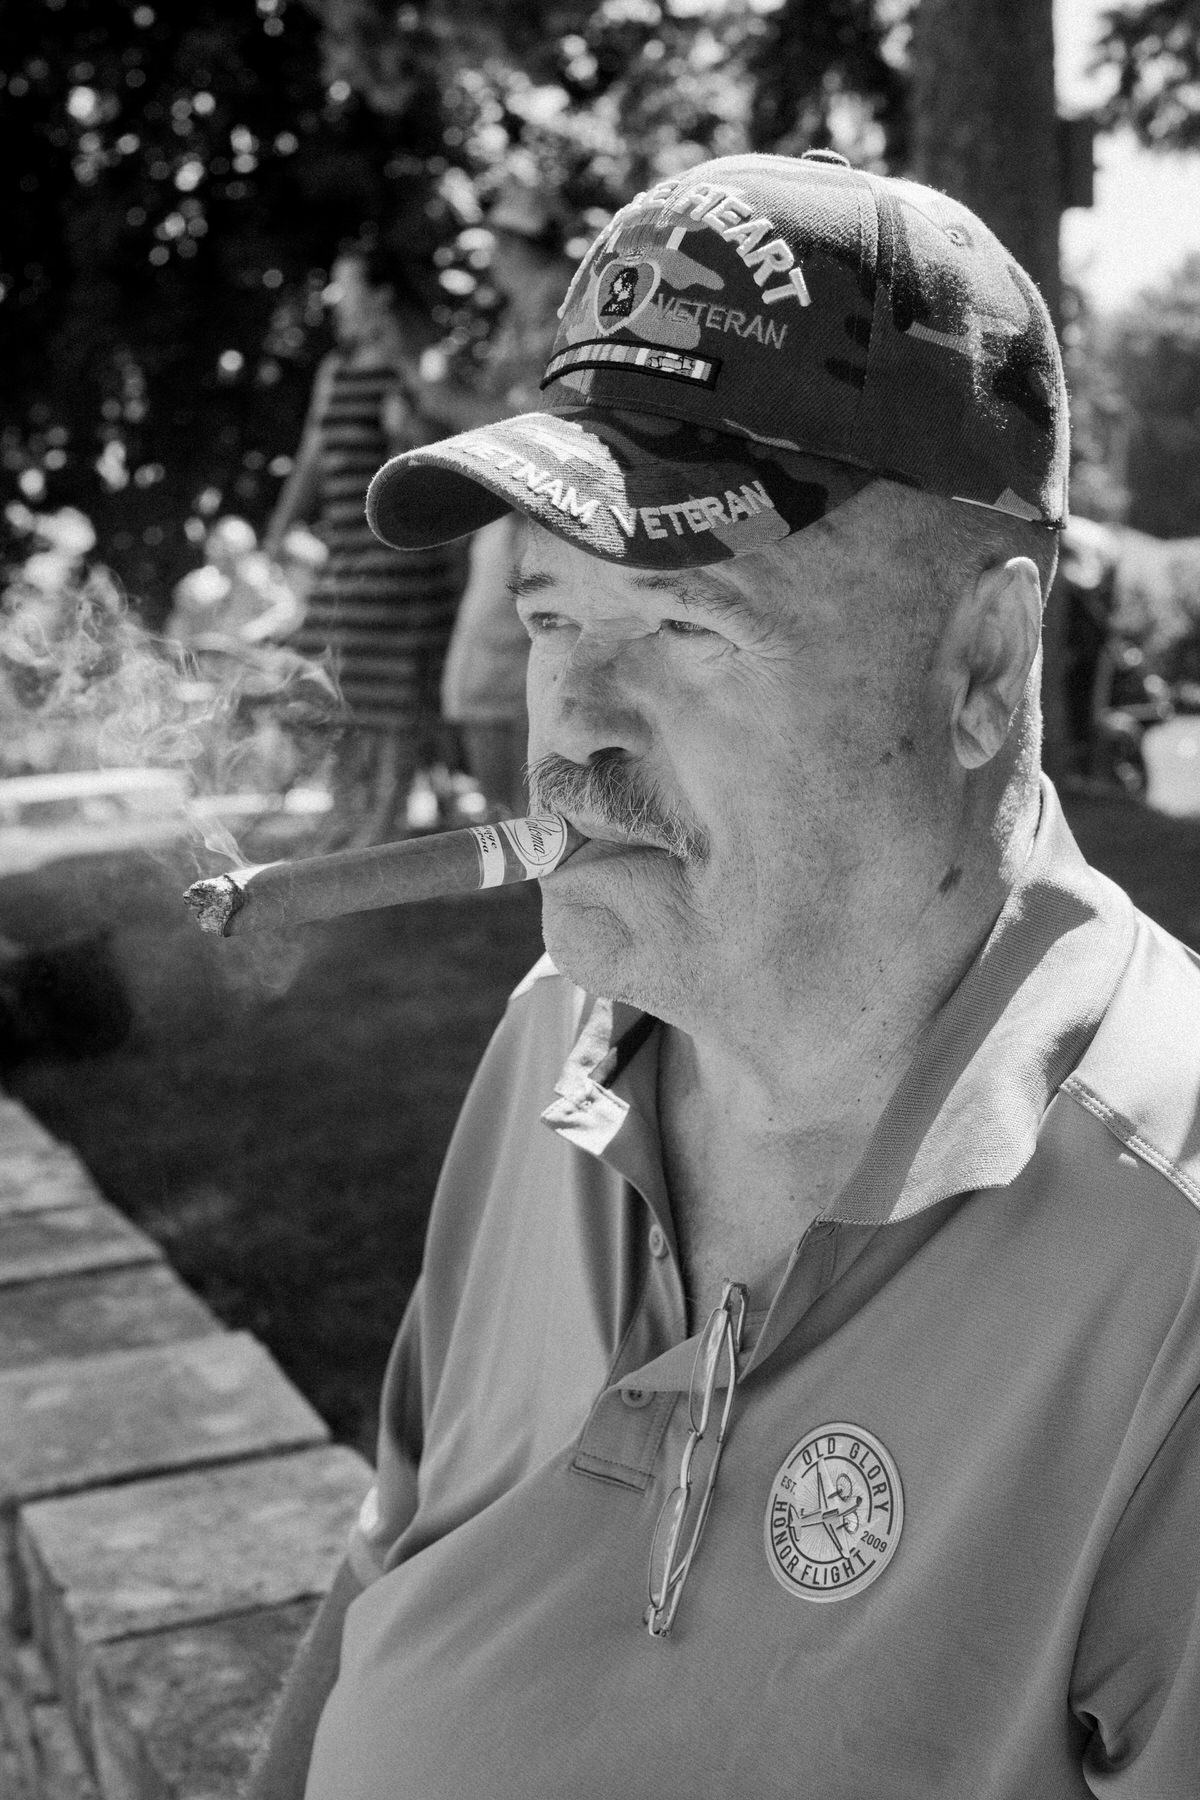 Mount-Calvary-Firemens-Picnic-Parade-Wisconsin-documentary-photography-by-Studio-L-photographer-Laura-Schneider_-0704